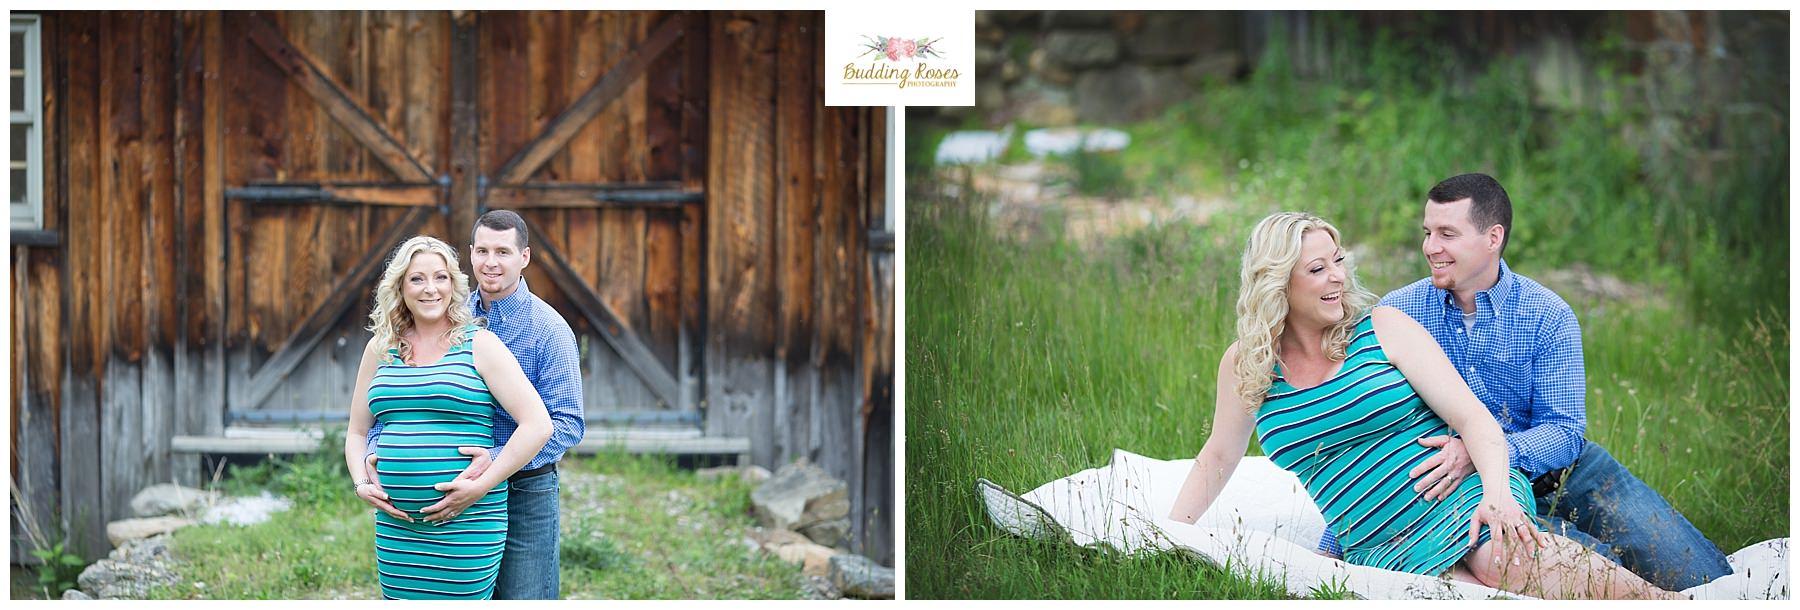 NJ Maternity Photographer, Maternity Pictures NJ, Pregnancy Pictures NJ, NJ maternity Photographer